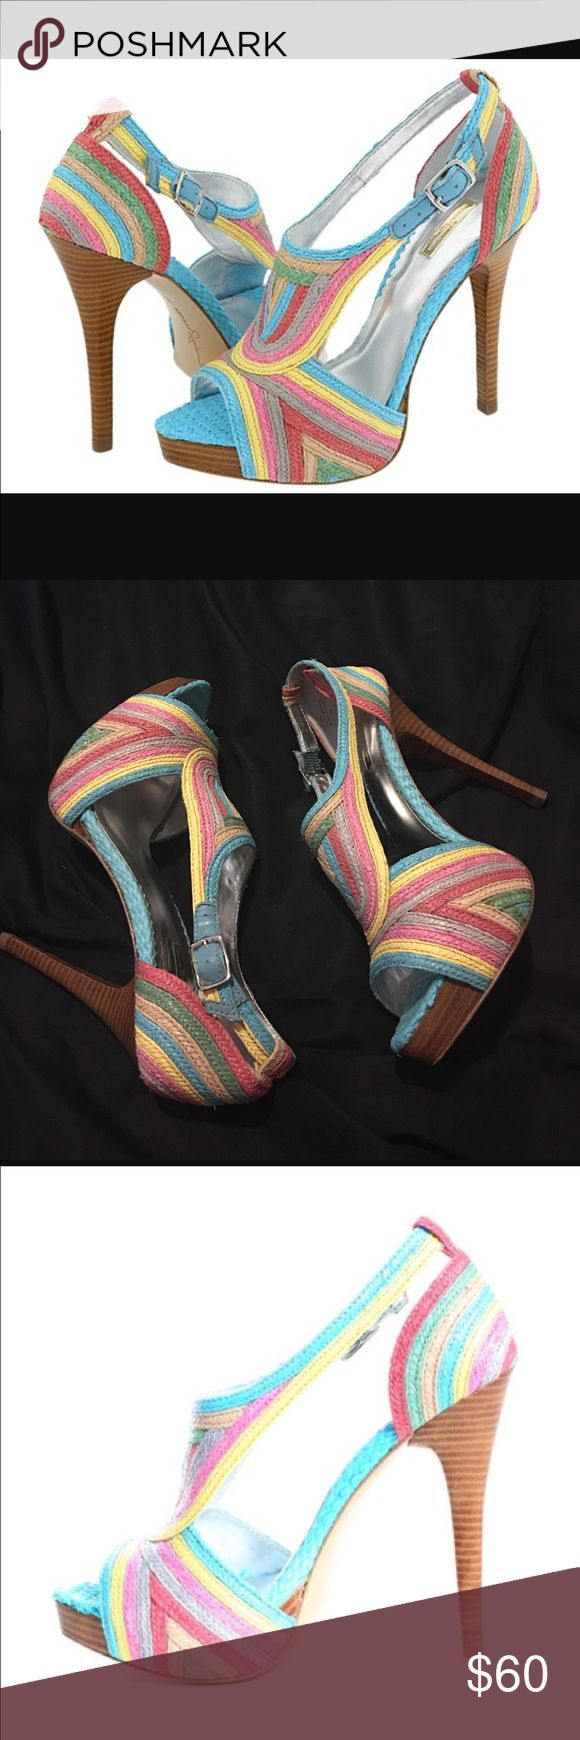 """Report Signature """"Lucie"""" Braided Raffia Shoes Report Signature """"Lucie"""" Braided Raffia Shoe; size 8, 4 3/4"""" stacked heel with 3/4 platform; Beautiful pastel colors; great condition Report Signature Shoes"""